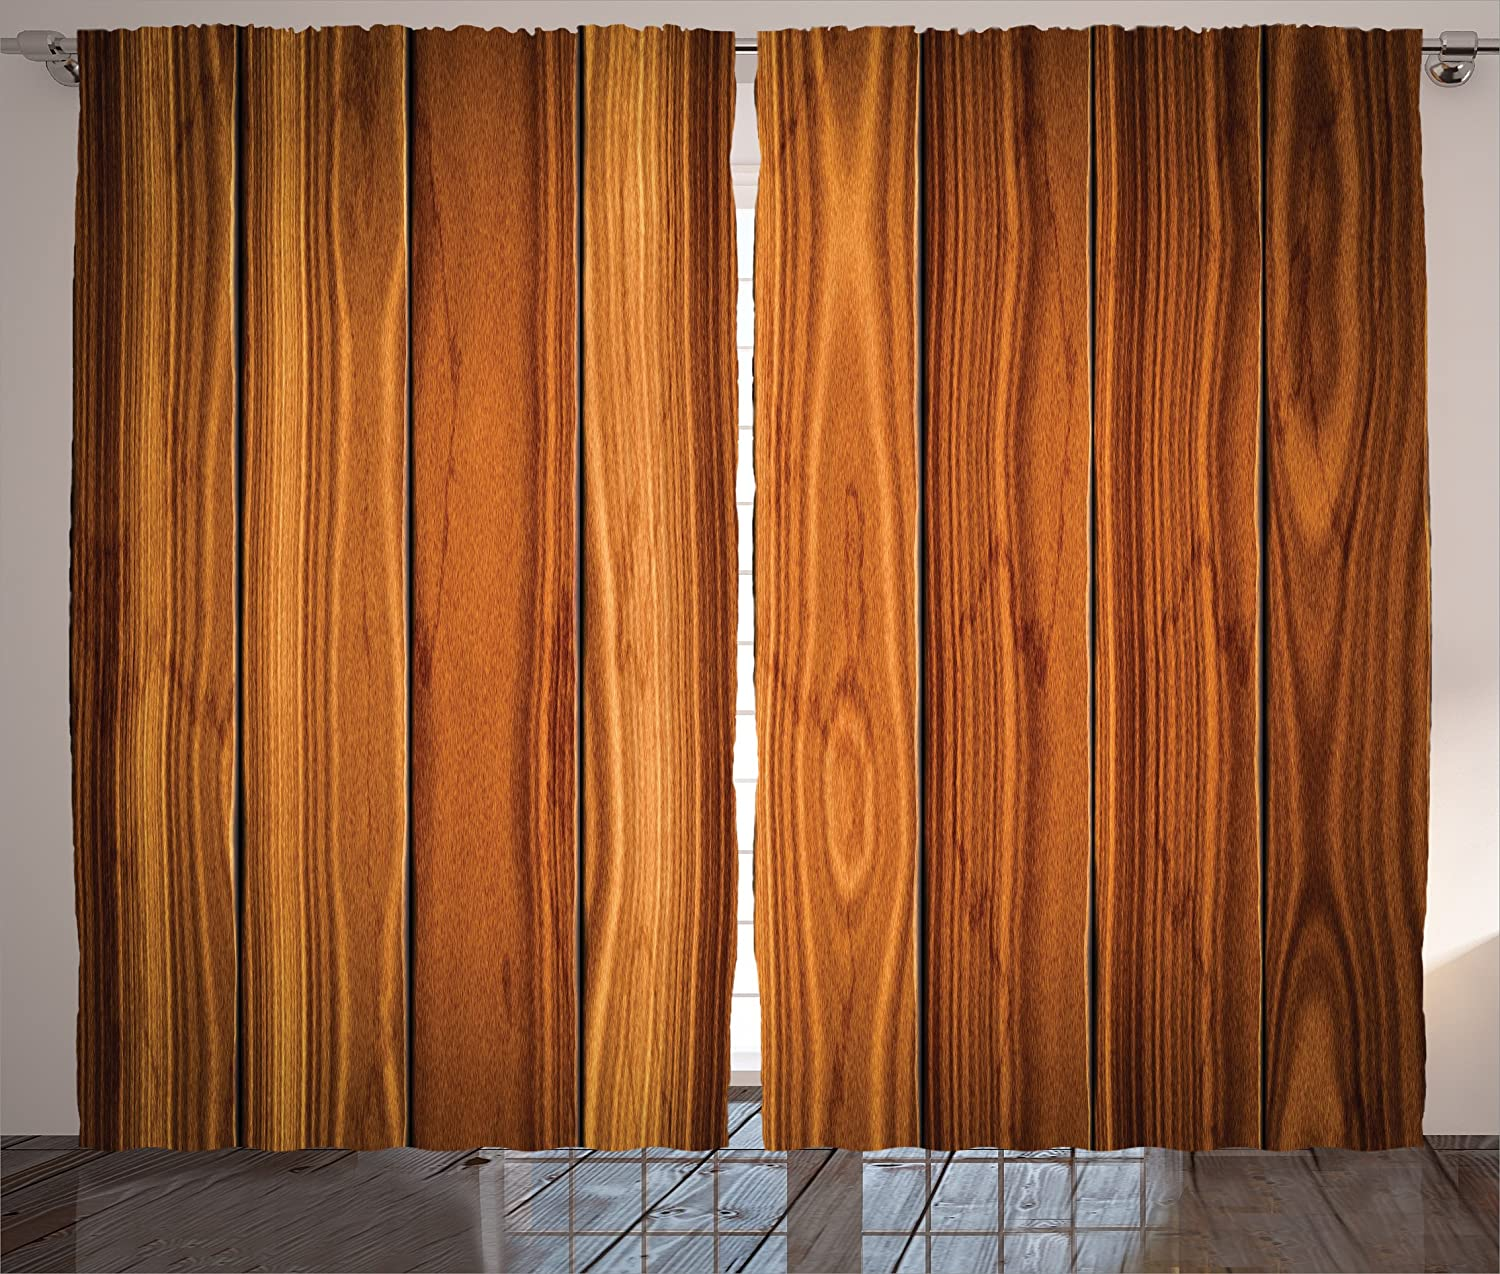 Ambesonne Rustic Curtains, Vertical Wooden Planks Image Cottage Cabin Life  in Countryside Theme, Living Room Bedroom Window Drapes 2 Panel Set, 108\